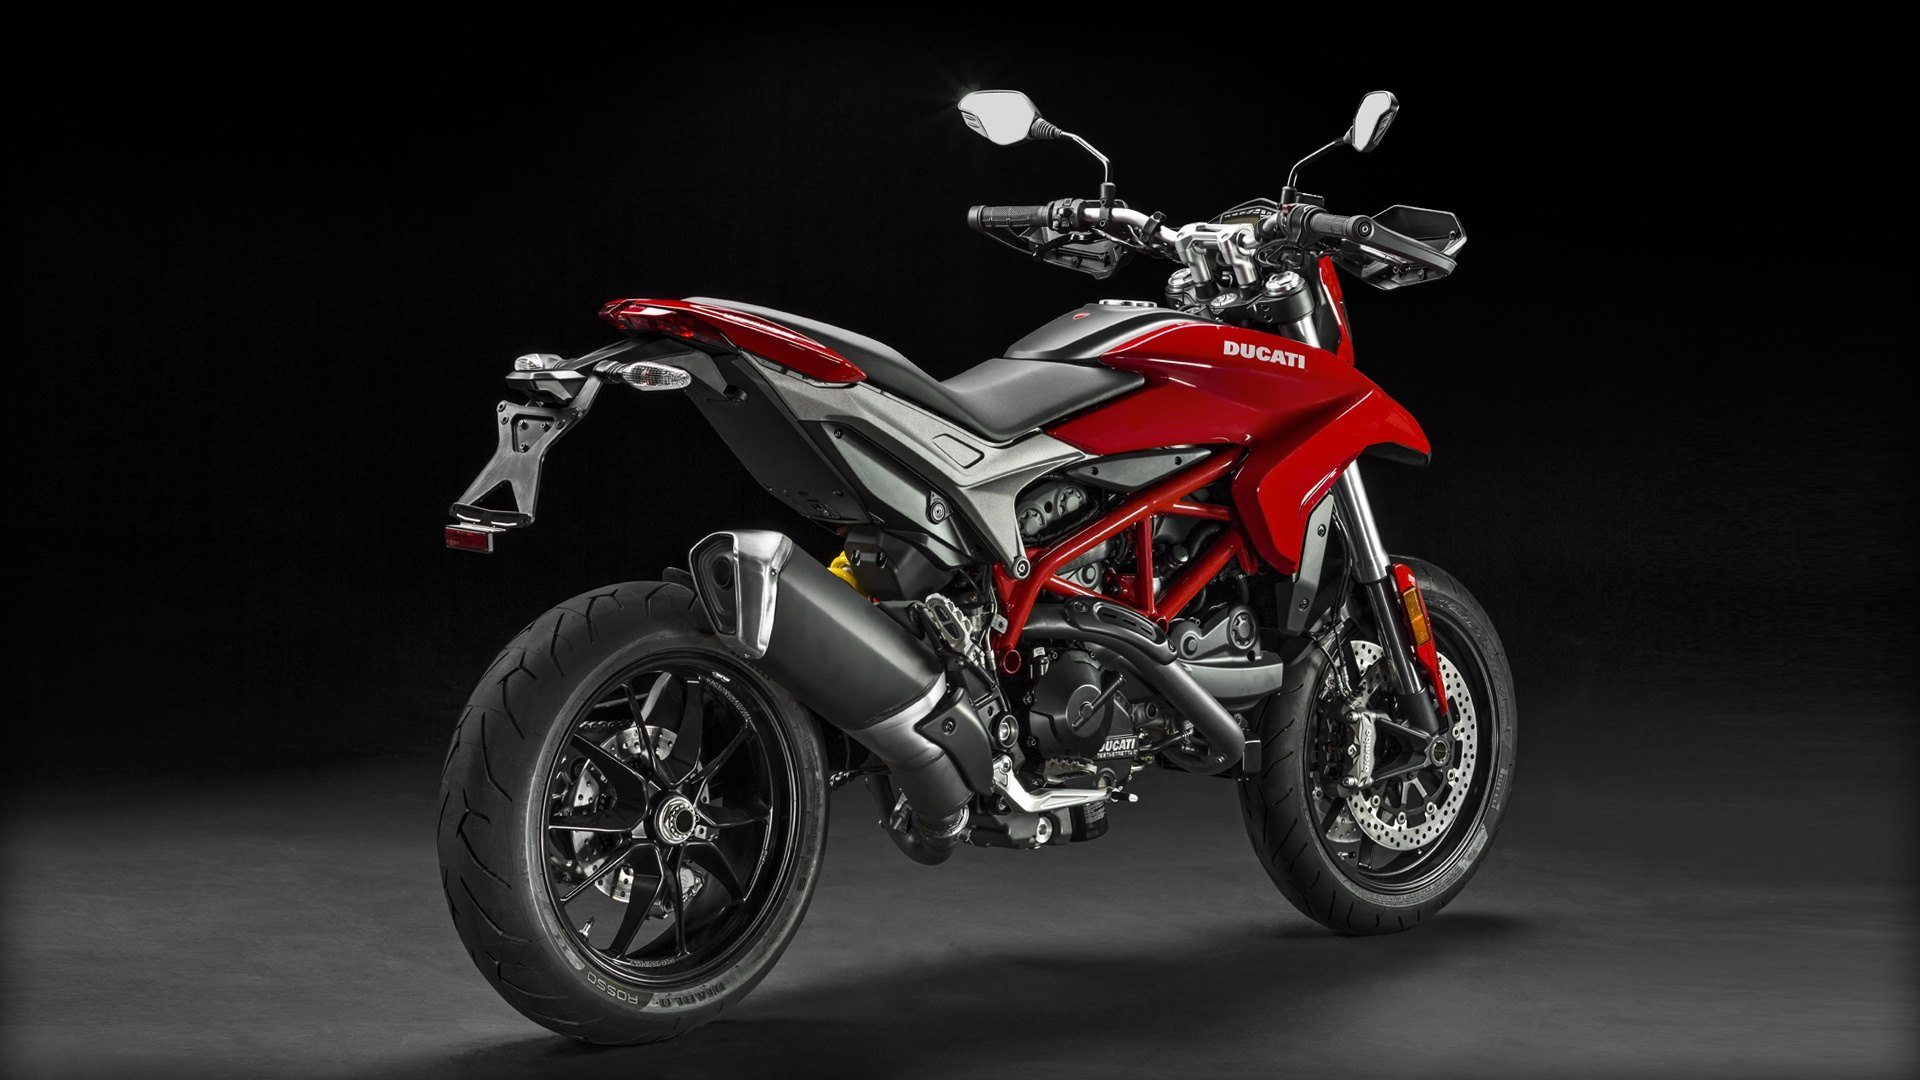 2016 Ducati Hypermotard 939 in Miami, Florida